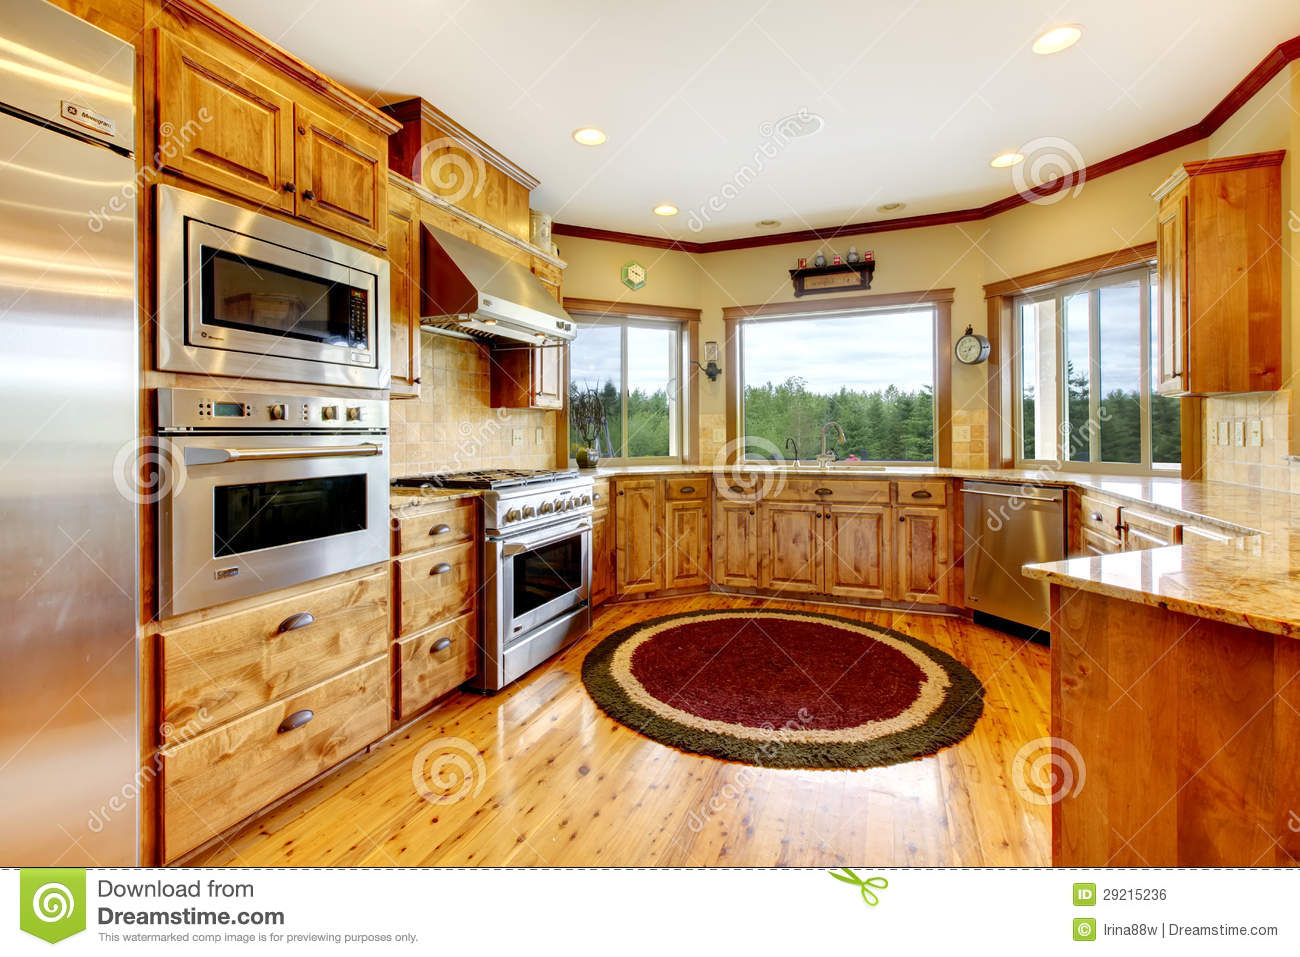 wood luxury home kitchen interior new farm american home royalty american home interior